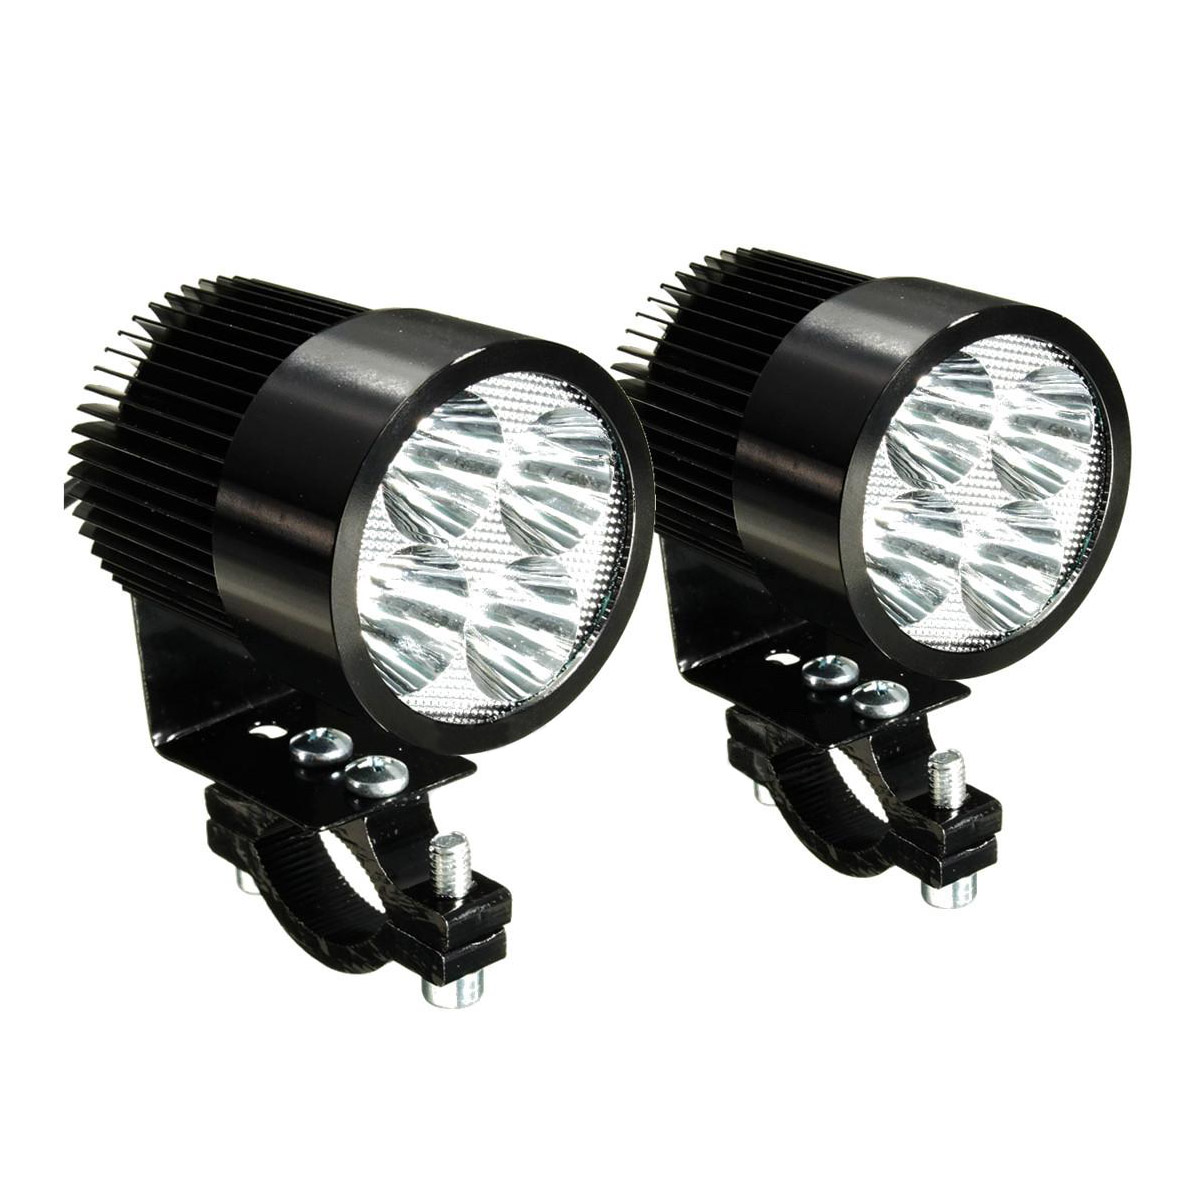 2 x universal motorrad osram led front punkt licht scheinwerfer lampen 12 2 dkko ebay. Black Bedroom Furniture Sets. Home Design Ideas